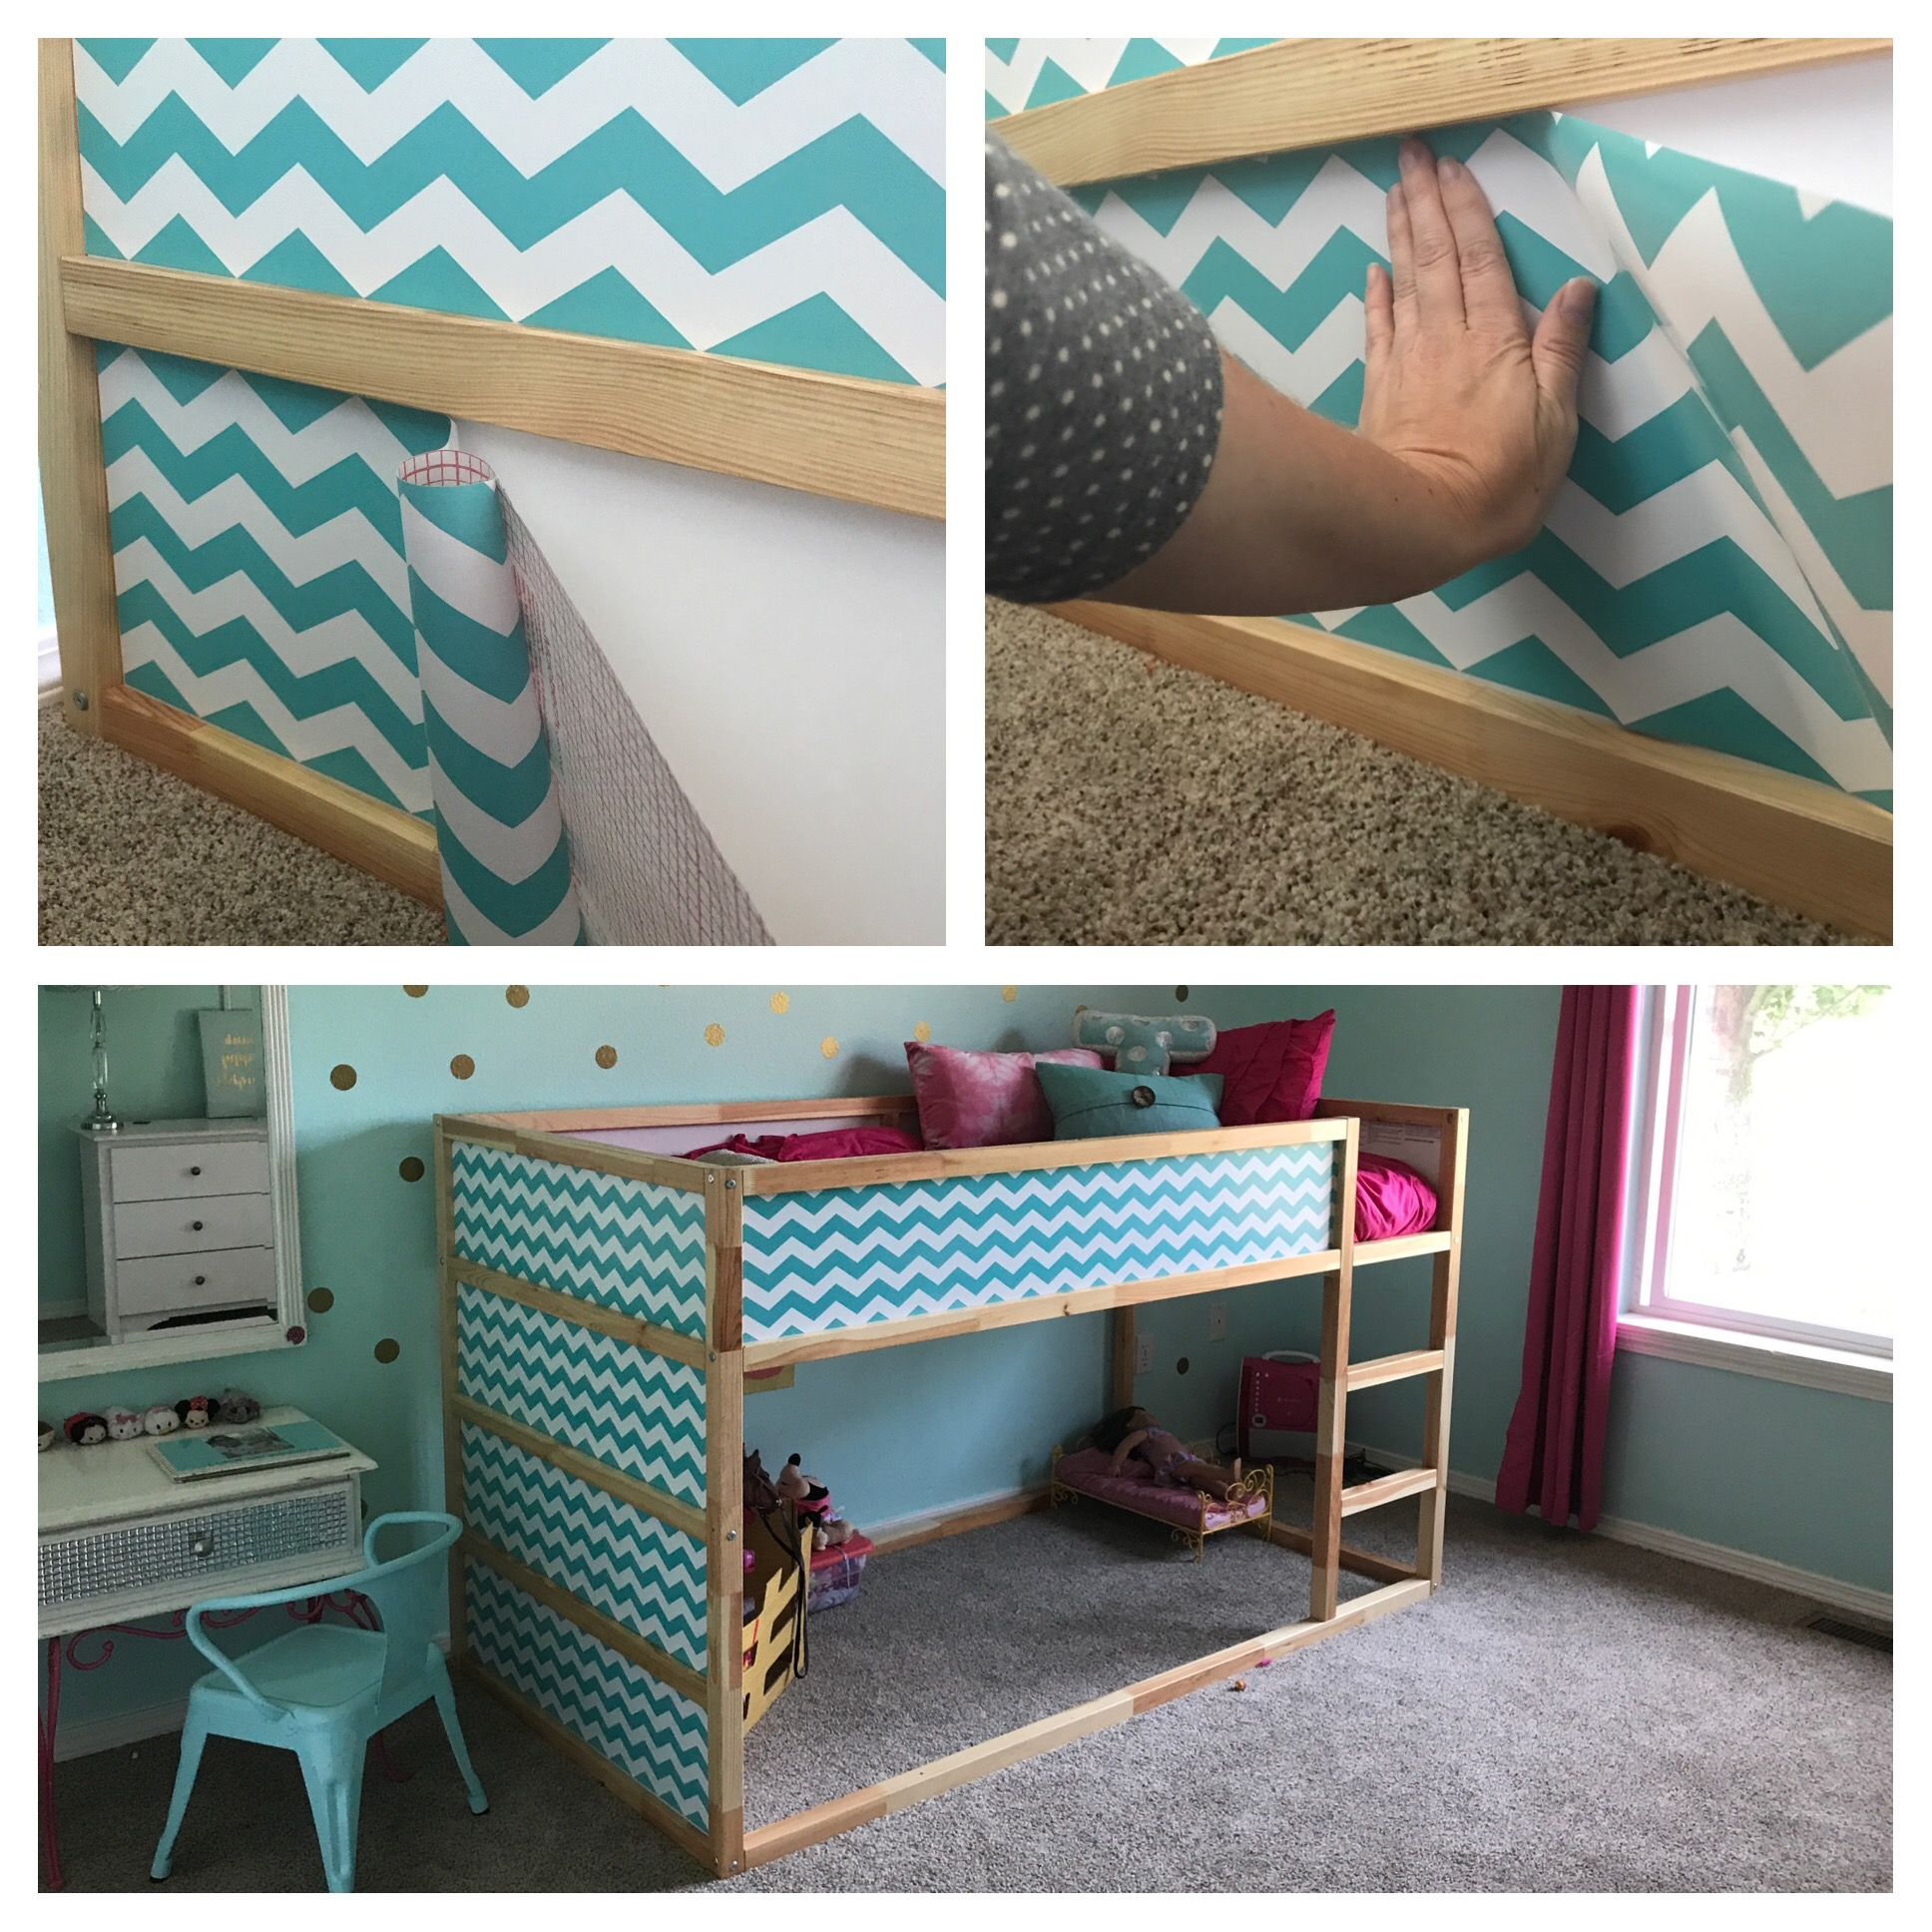 Contact Paper Shelf Liner Added To Ikea Kura Bed A Fun Easy Way To Add Color To The White Panels For Under 10 And Less T Ikea Kura Bed Kura Bed Baby